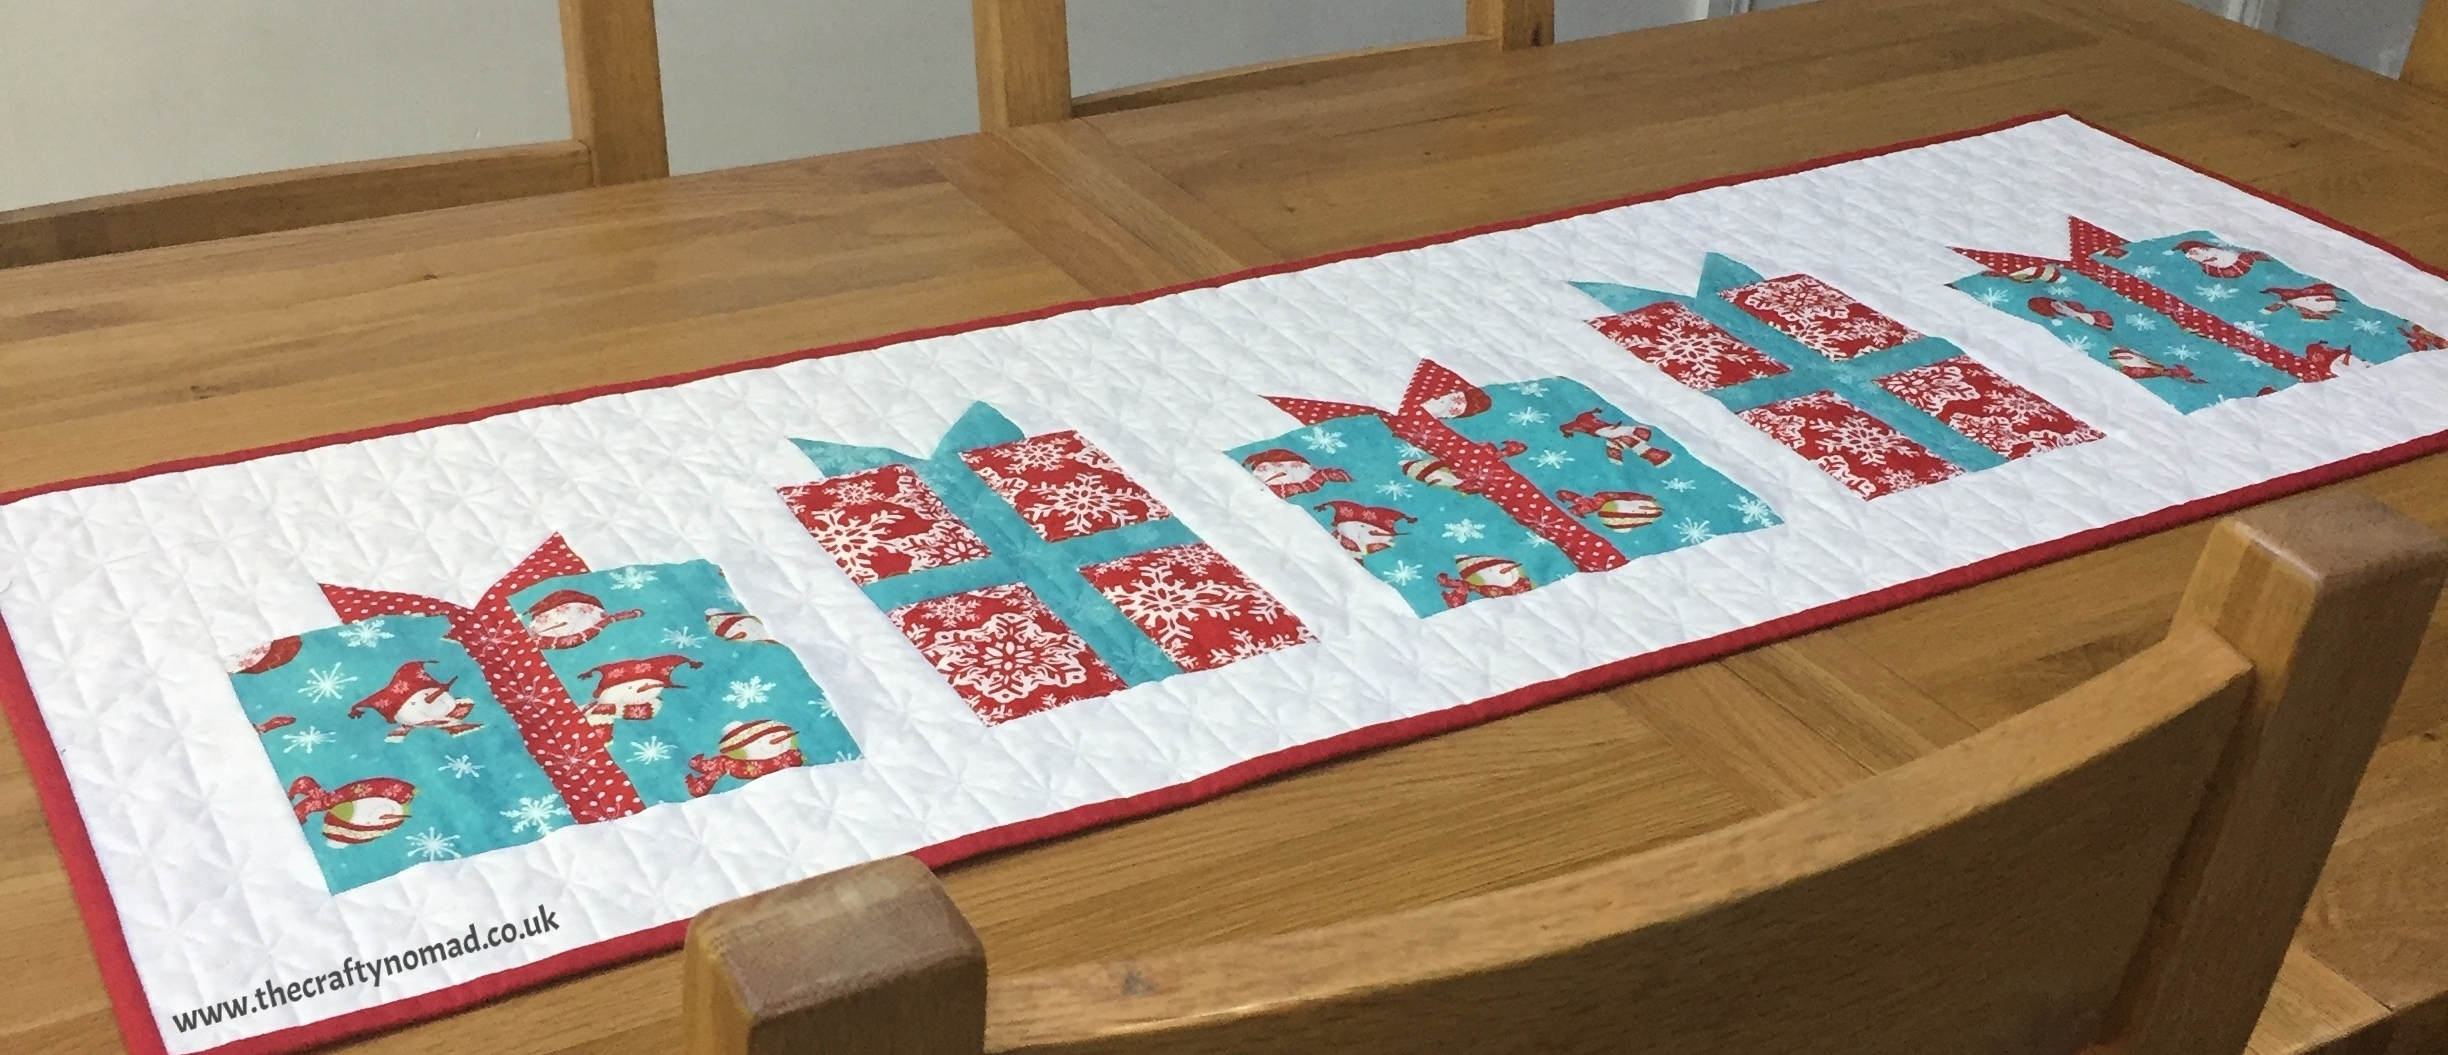 Gifts Galore Table Runner Pattern by The Crafty Nomad